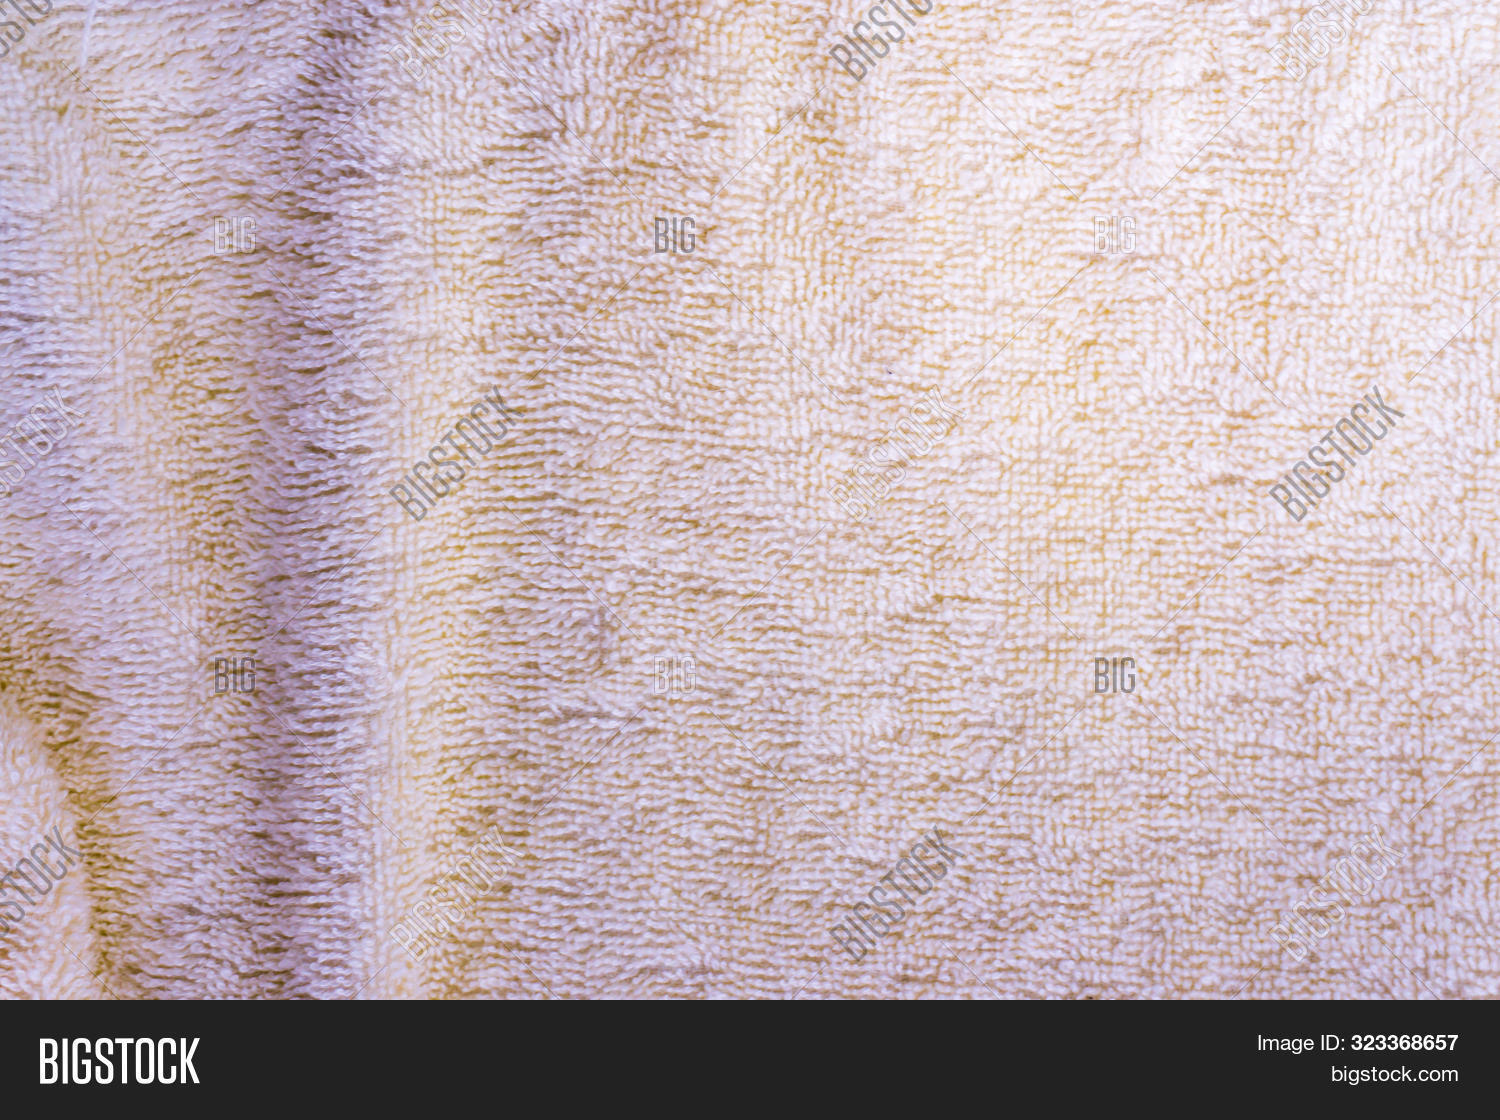 abstract,backdrop,background,beautiful,bright,burlap,canvas,clean,closeup,cloth,clothing,color,cotton,cover,crumpled,curtain,decoration,design,drapery,elegance,elegant,element,fabric,fashion,gray,linen,luxury,macro,material,pattern,rippled,romantic,satin,sheet,silk,silky,smooth,soft,softness,space,style,surface,textile,texture,textured,wave,white,wrinkle,wrinkled